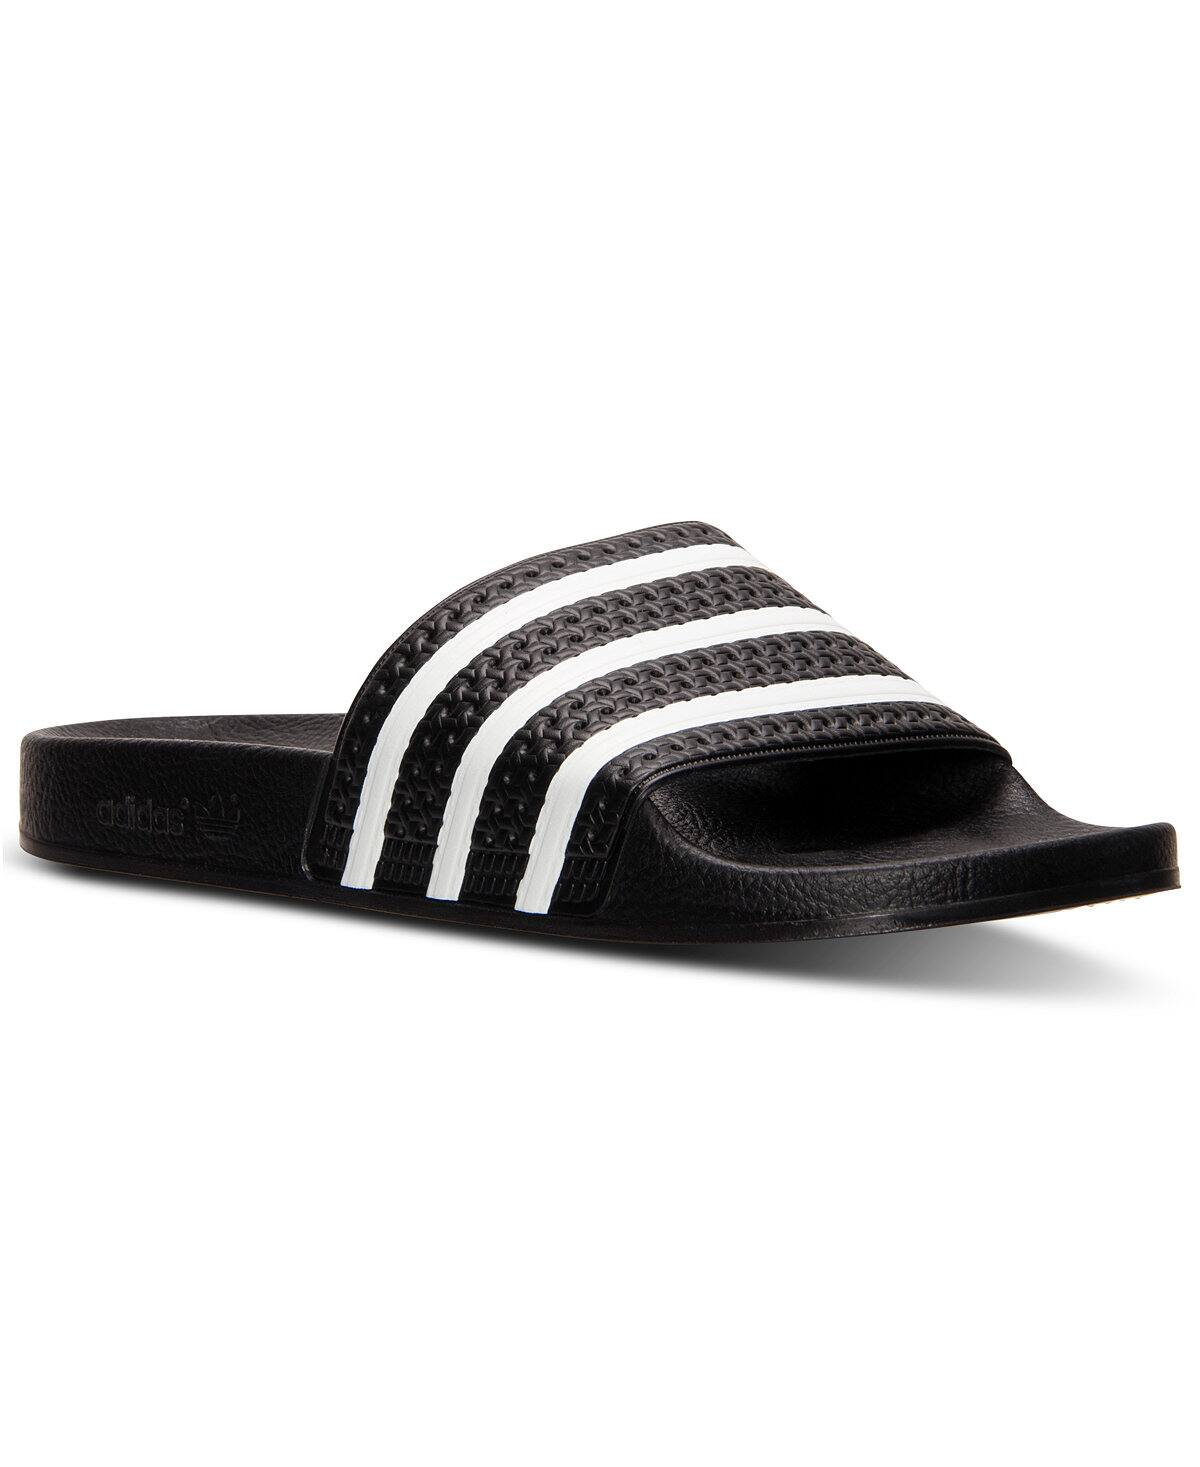 Adidas Men's Adilette Slide Sandals $19.98 Free ship on order $49 or with beauty item